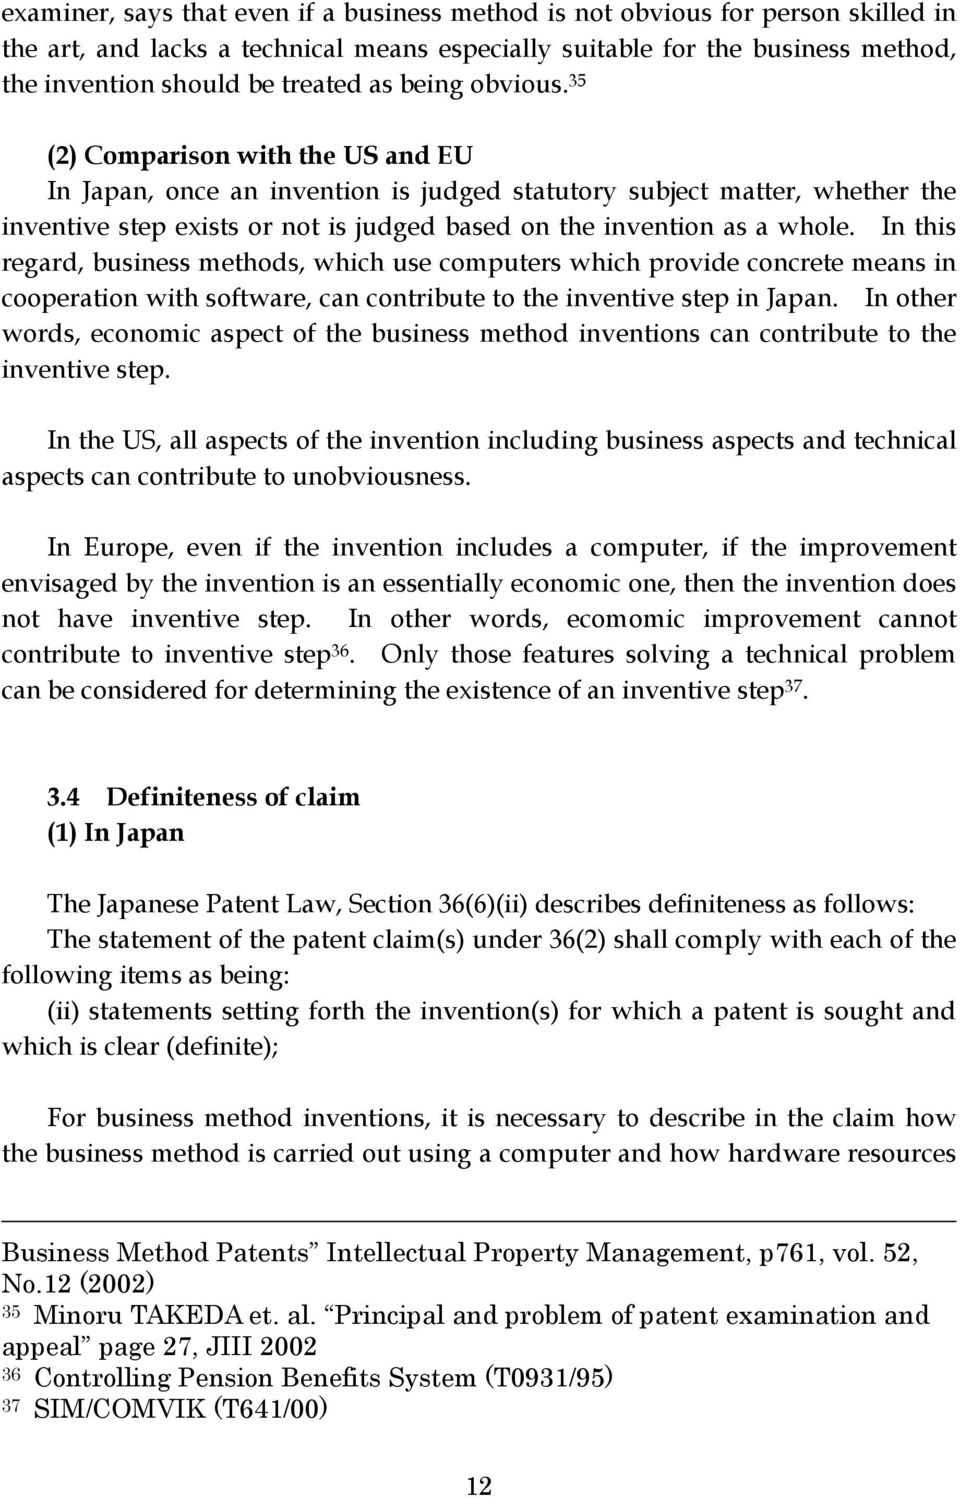 35 (2) Comparison with the US and EU In Japan, once an invention is judged statutory subject matter, whether the inventive step exists or not is judged based on the invention as a whole.